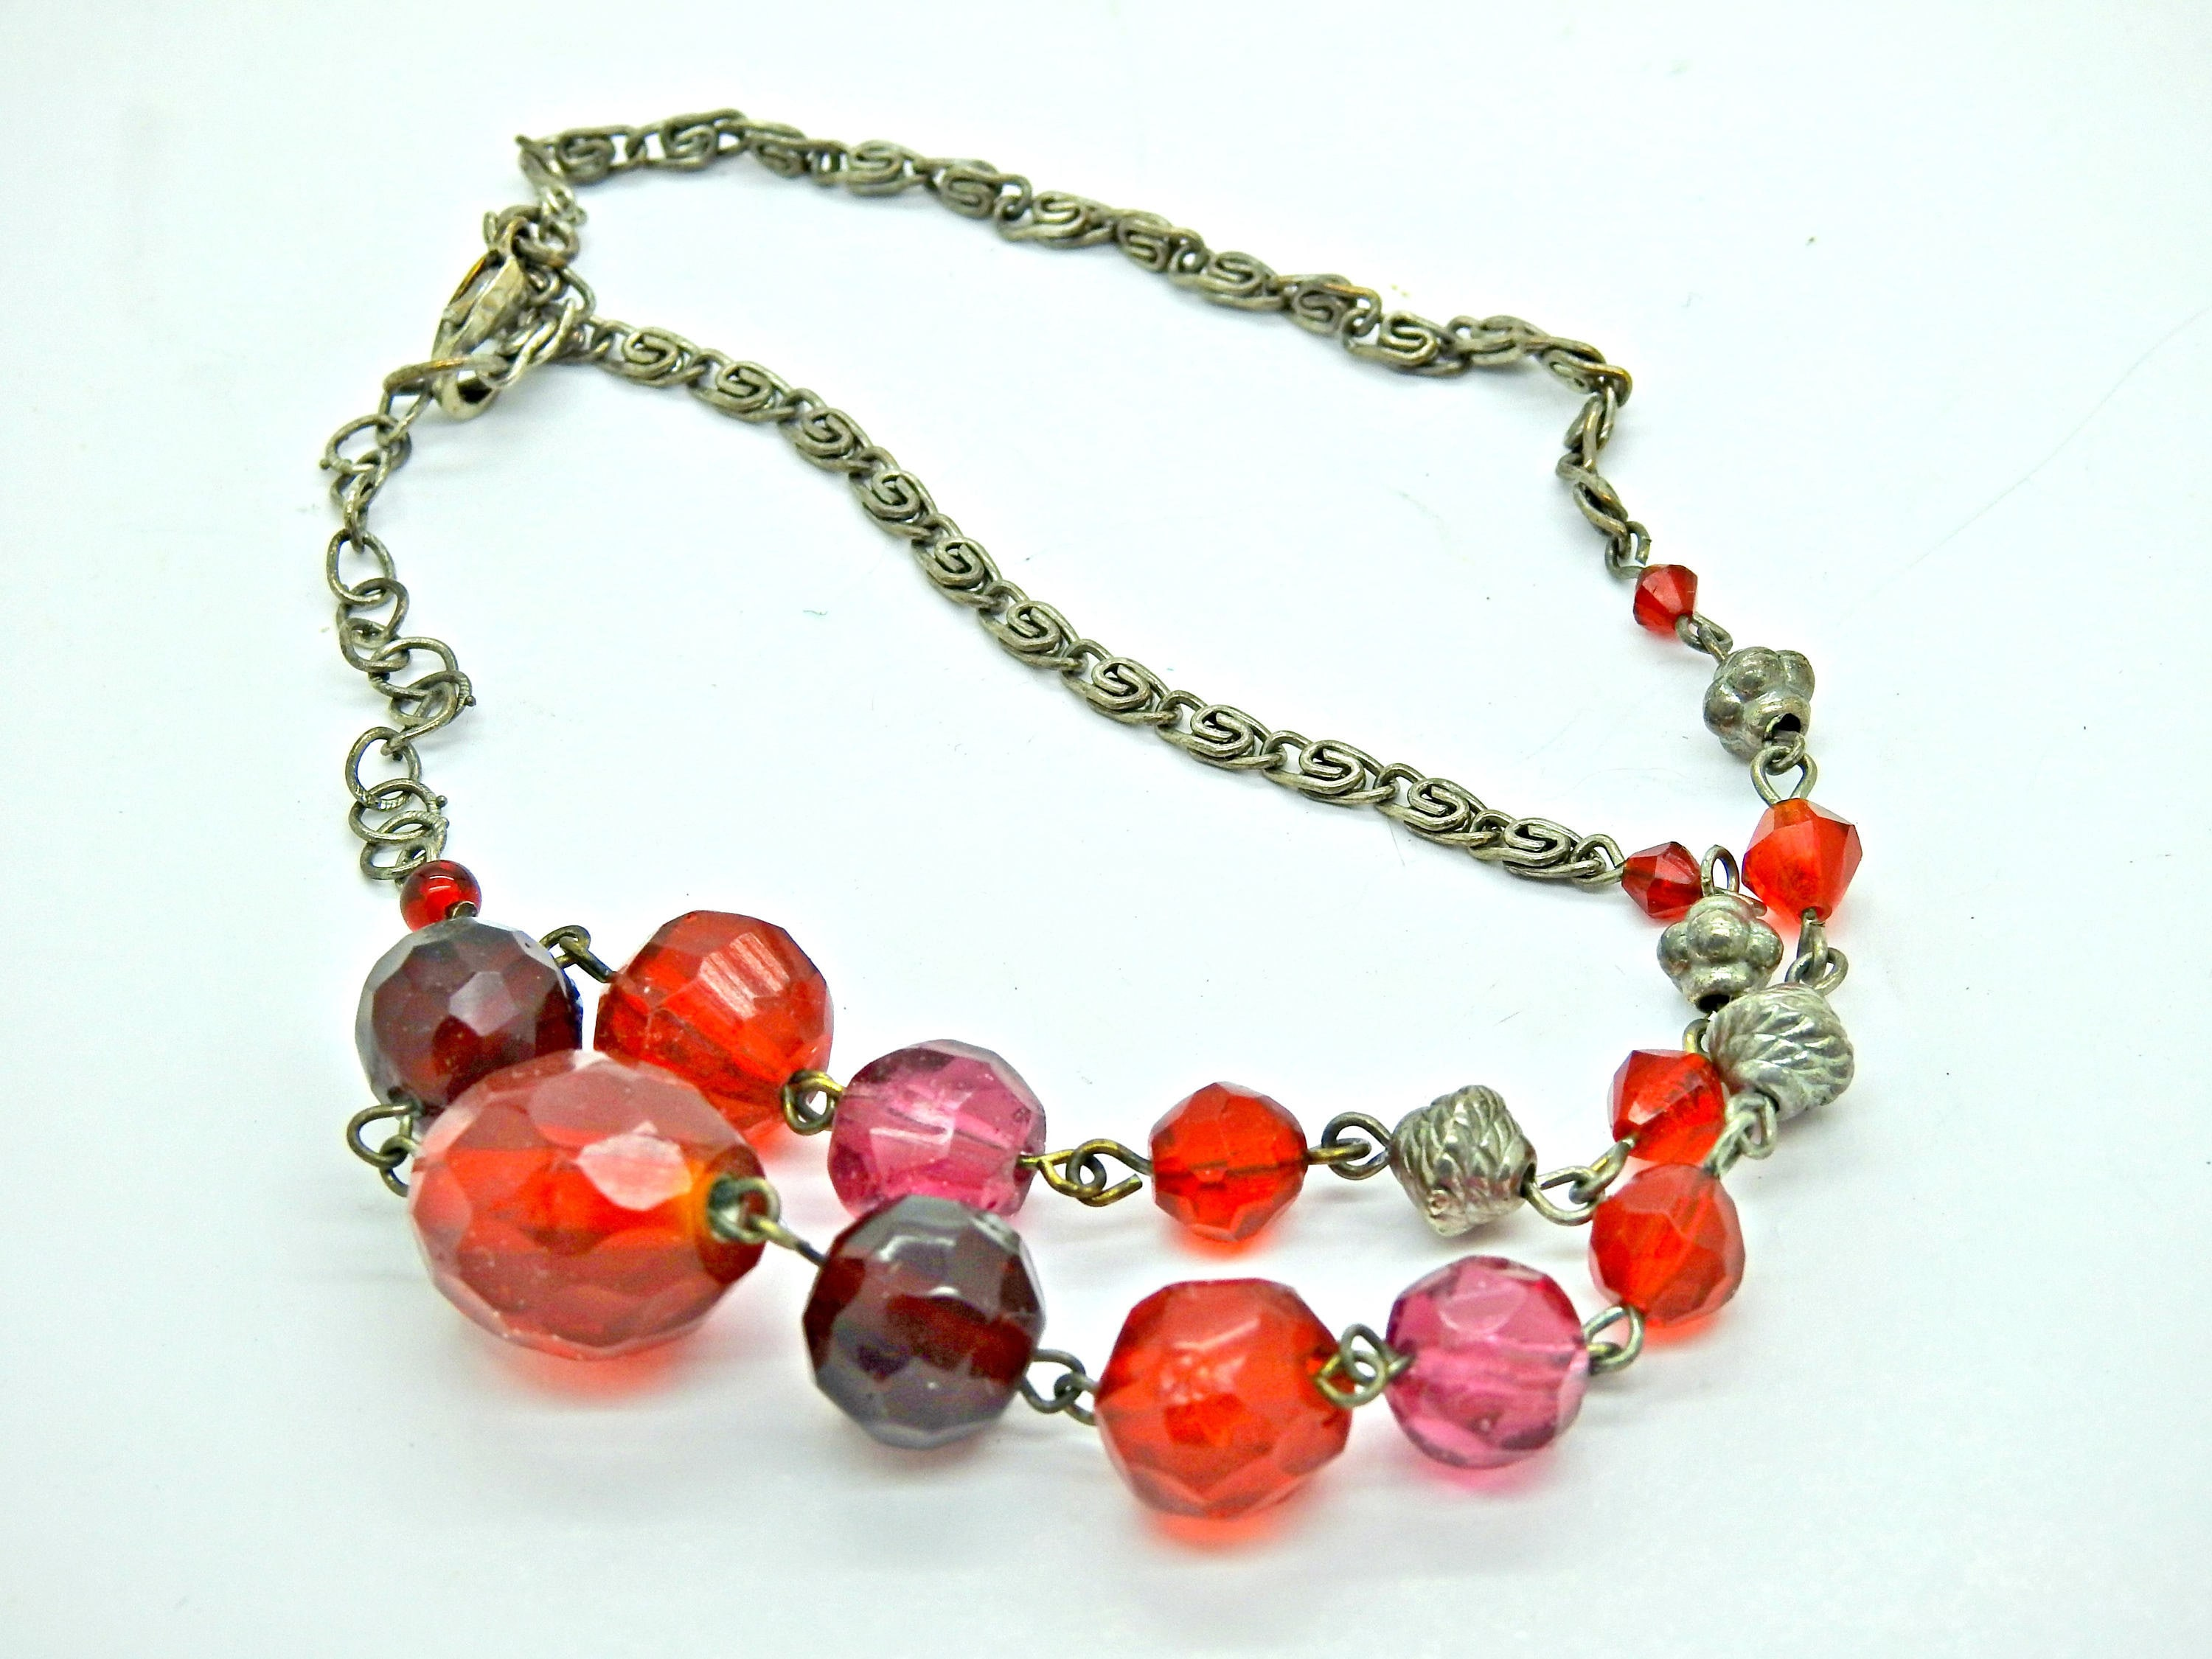 Vintage jewelry necklace gift-for-her